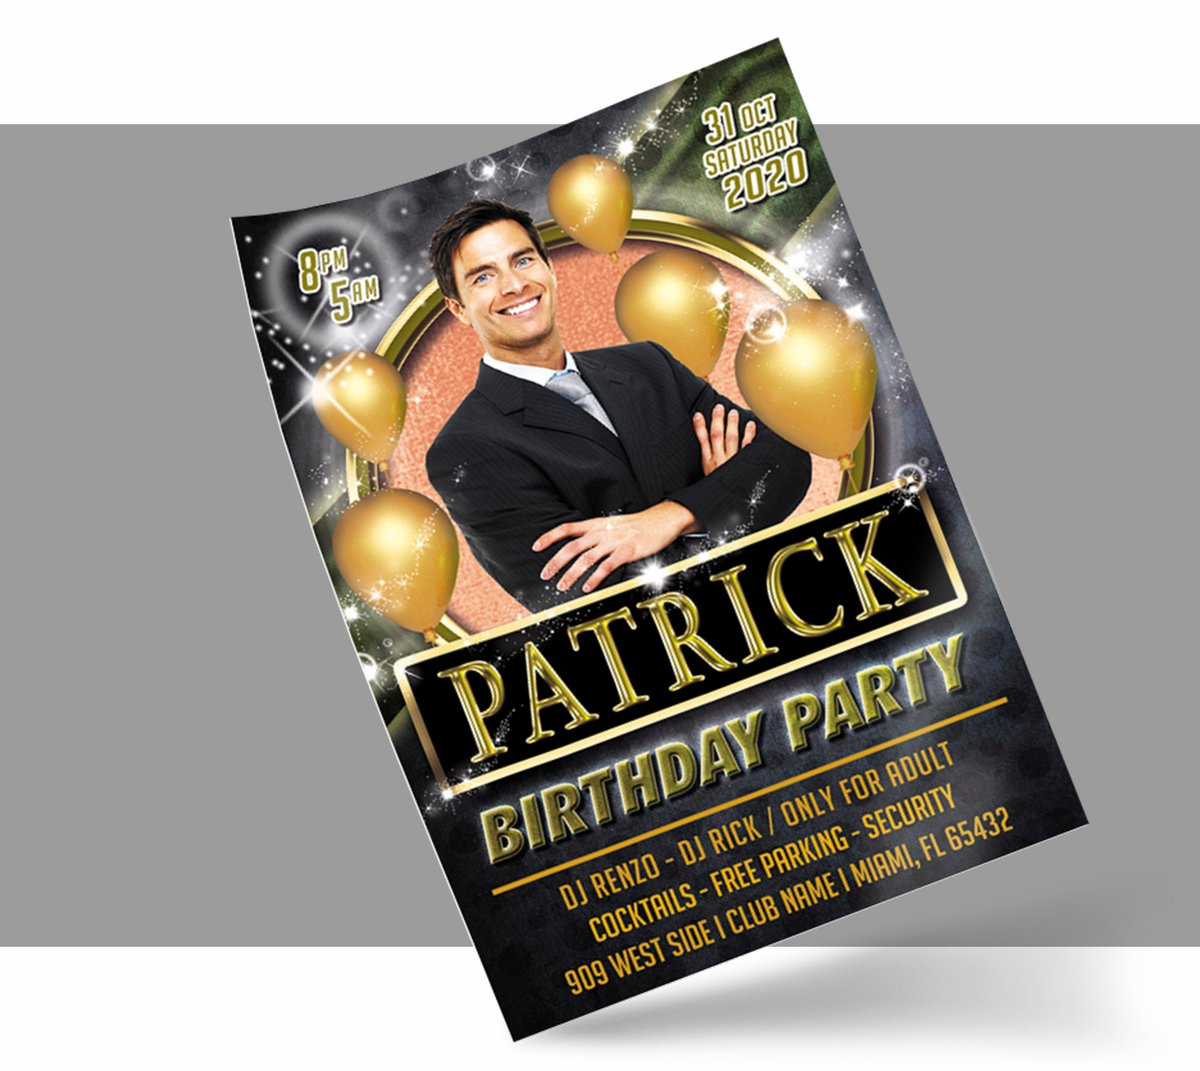 BIRTHDAY PARTY FLYER Template, Event Party Flyer | Birthday Invitation, Photoshop Template, Birthday Celebration, Customization Included https://etsy.me/2UBqBHO  #papergoods #negro #cumpleanos #oro #vertical #birthdayflyer #photoshoptemplate #flyerevent #invitation🎈✨